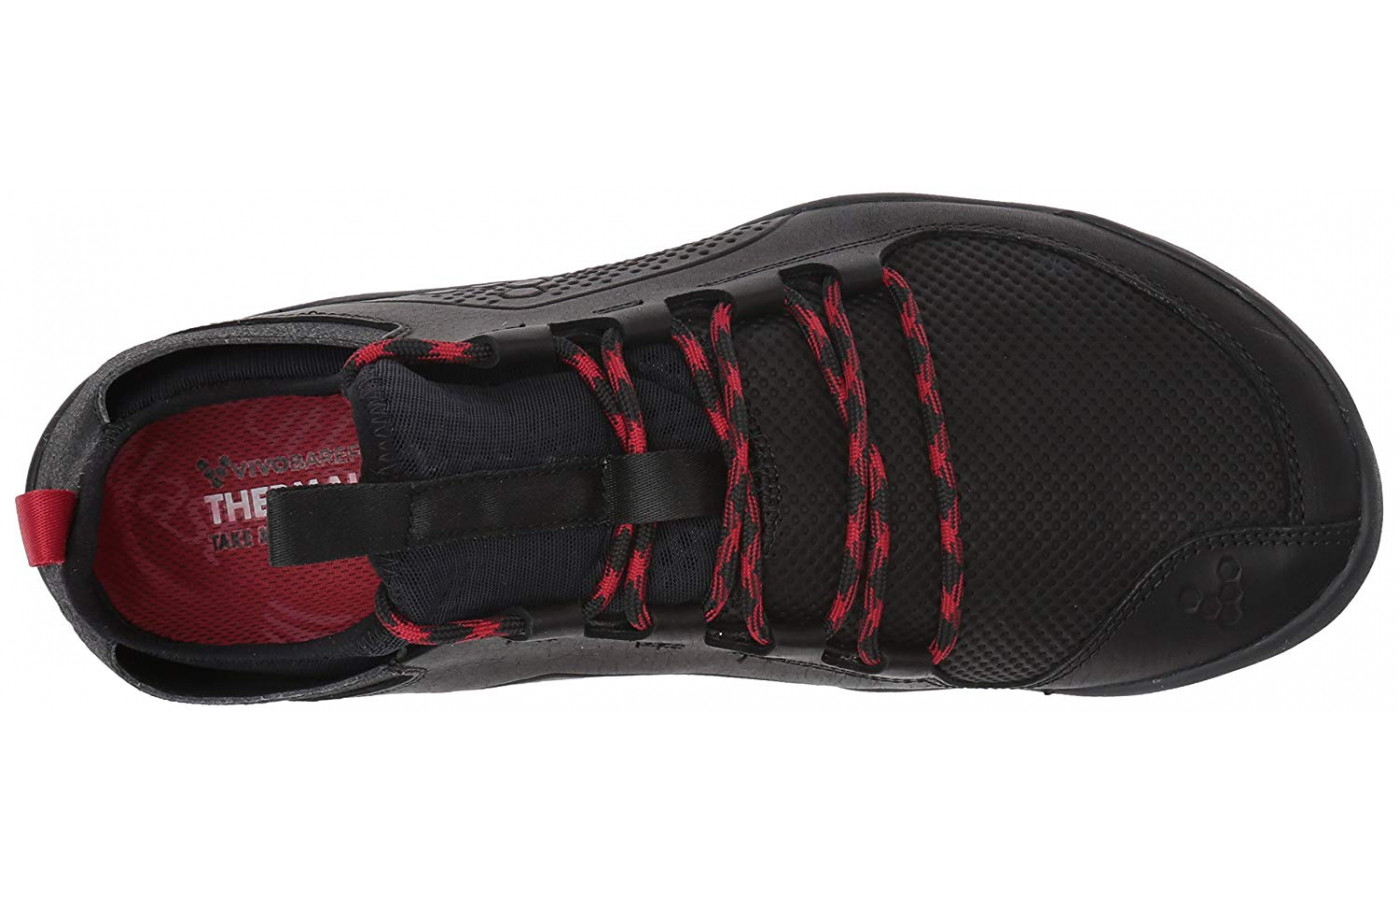 The Primus Trek's removable thermal insole keeps the foot comfortable throughout all seasons